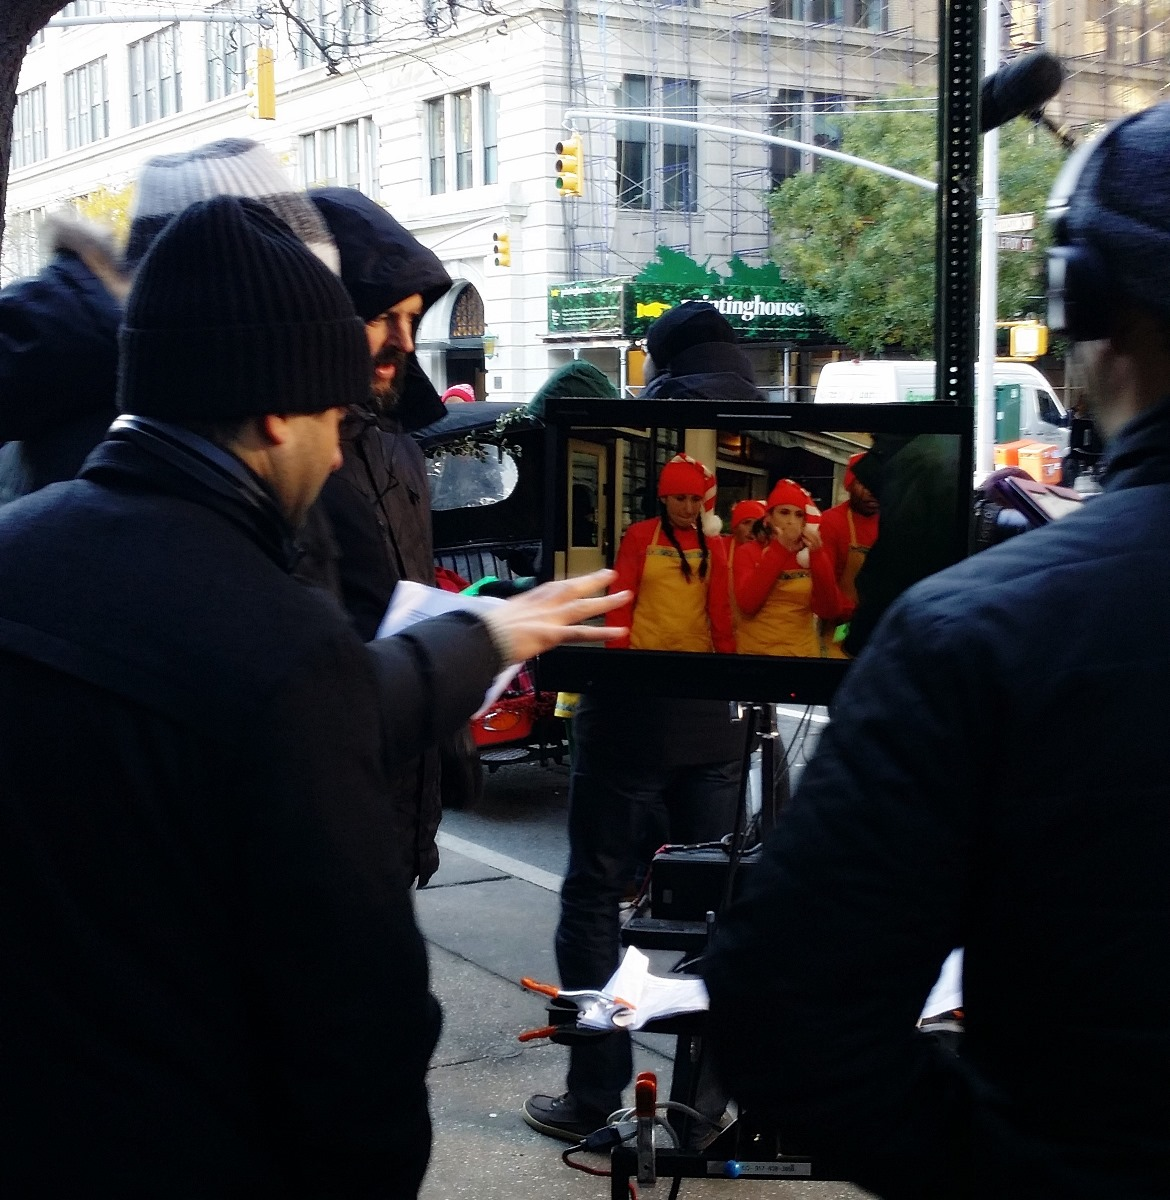 Filming Christmas ads - New York New York, travel blog by BeckyBecky Blogs